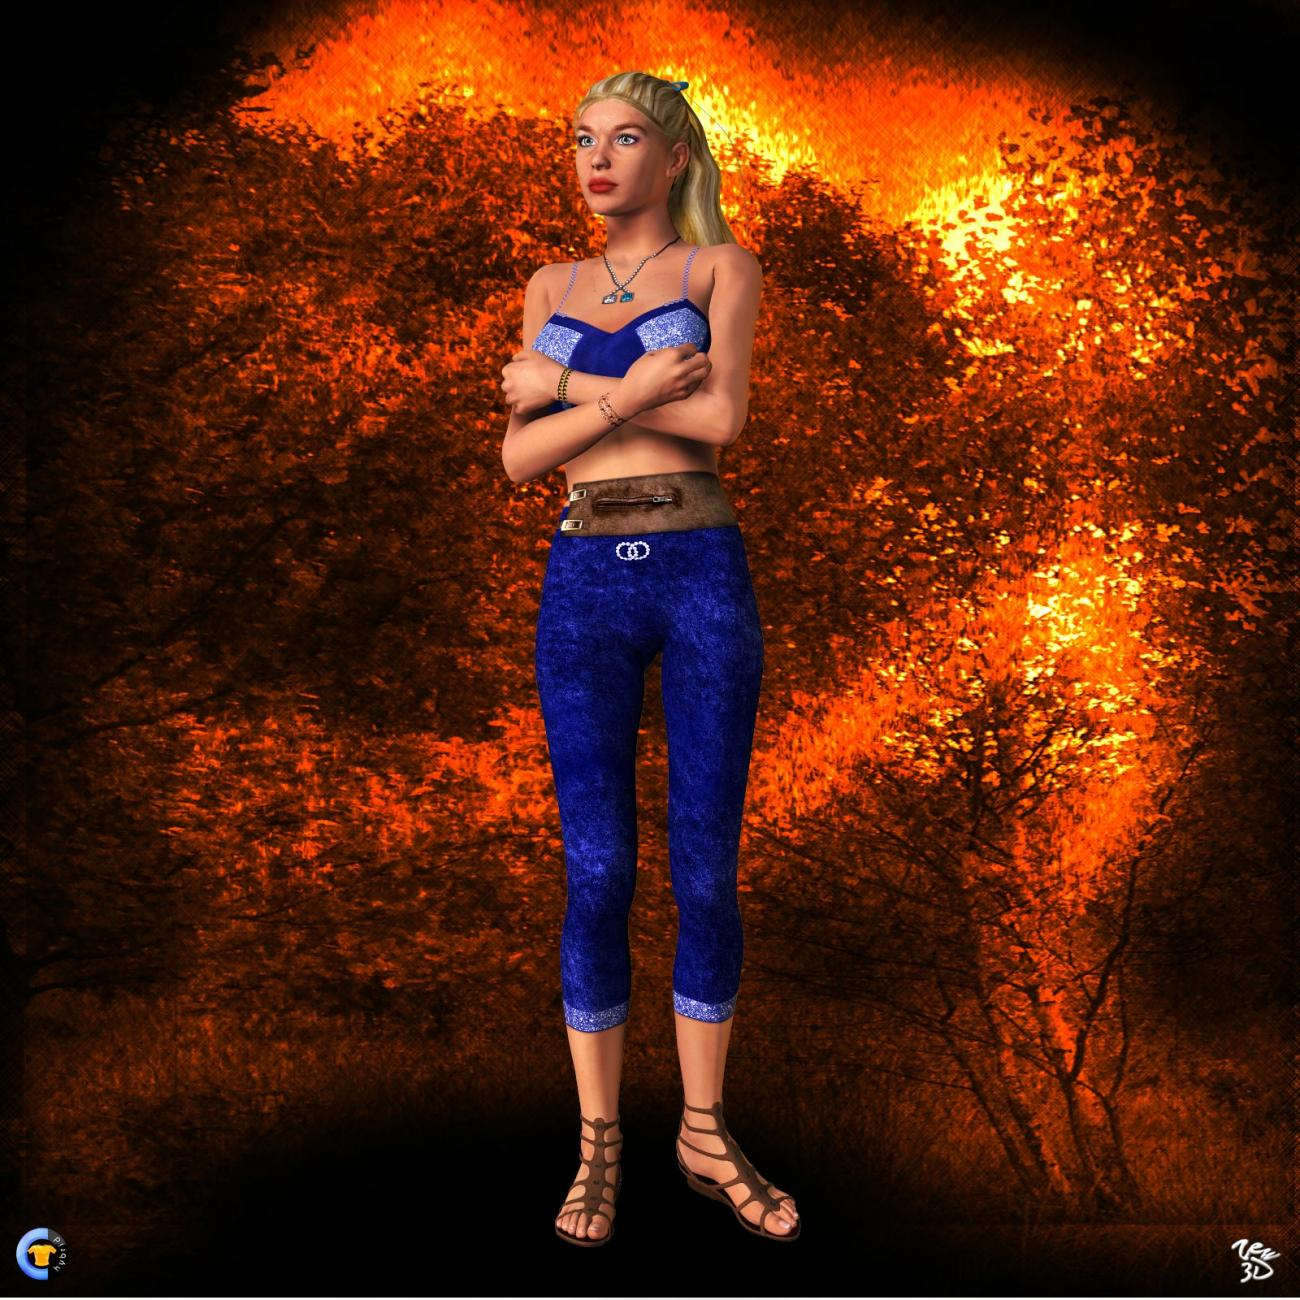 CLOTHER Hybrid - Fire around me by zew3d